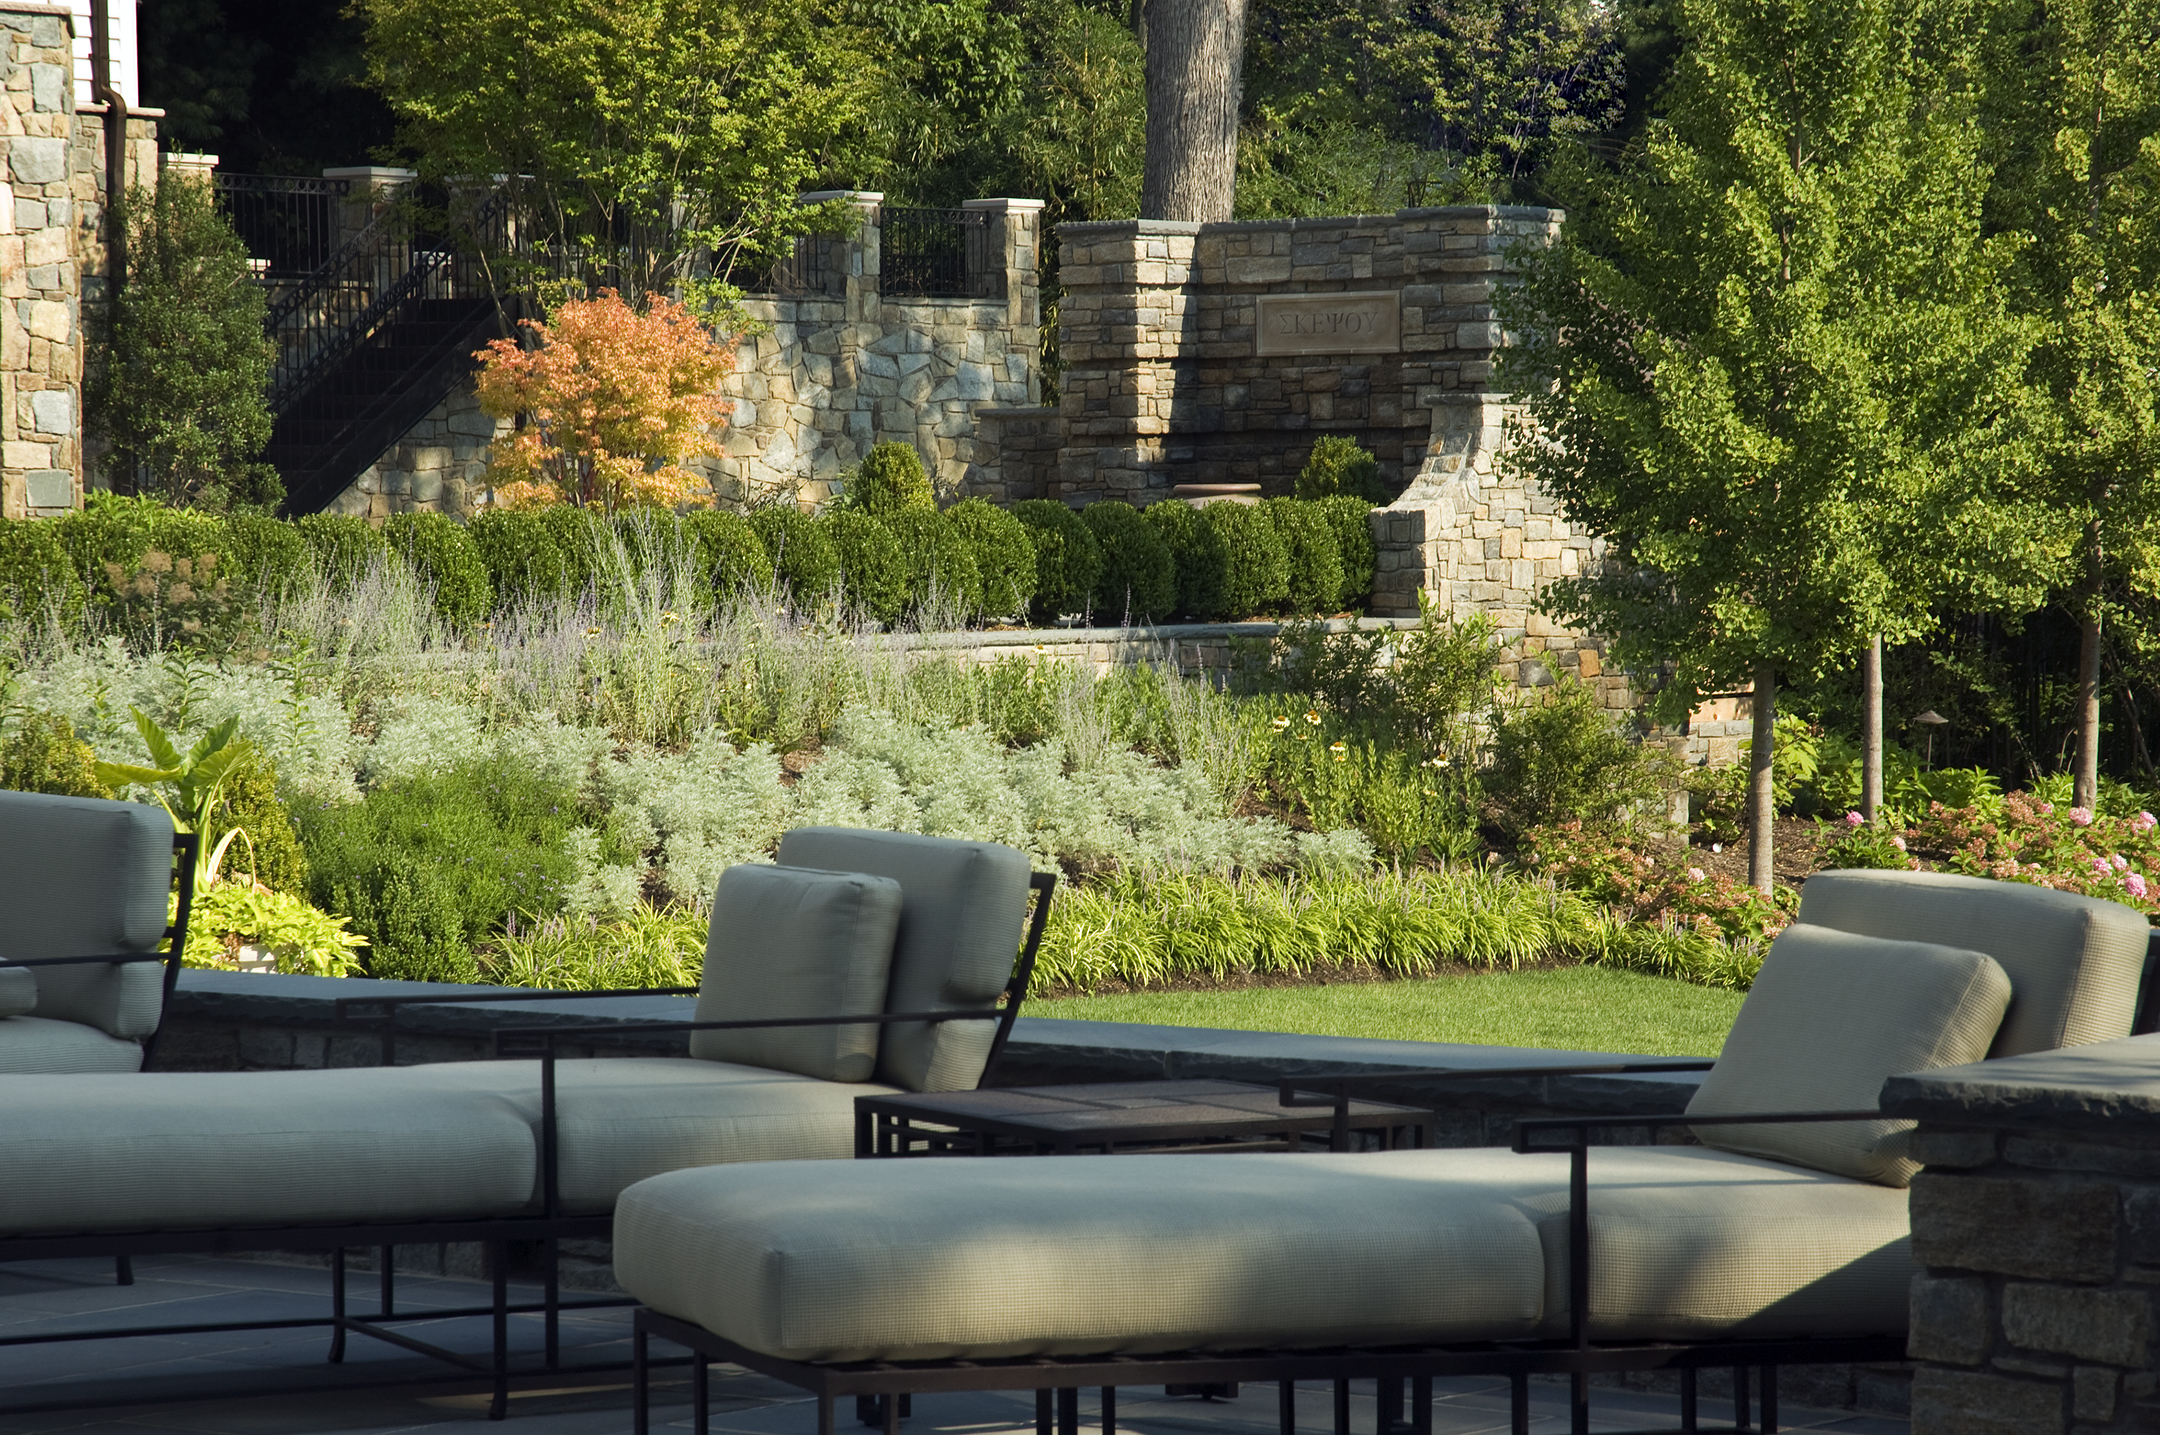 Project Location: McLean, Virginia  Completion: 2008  General Contractor: Tilson Group  Primary Material Palette: fieldstone, bluestone  Photos By: Allen Russ